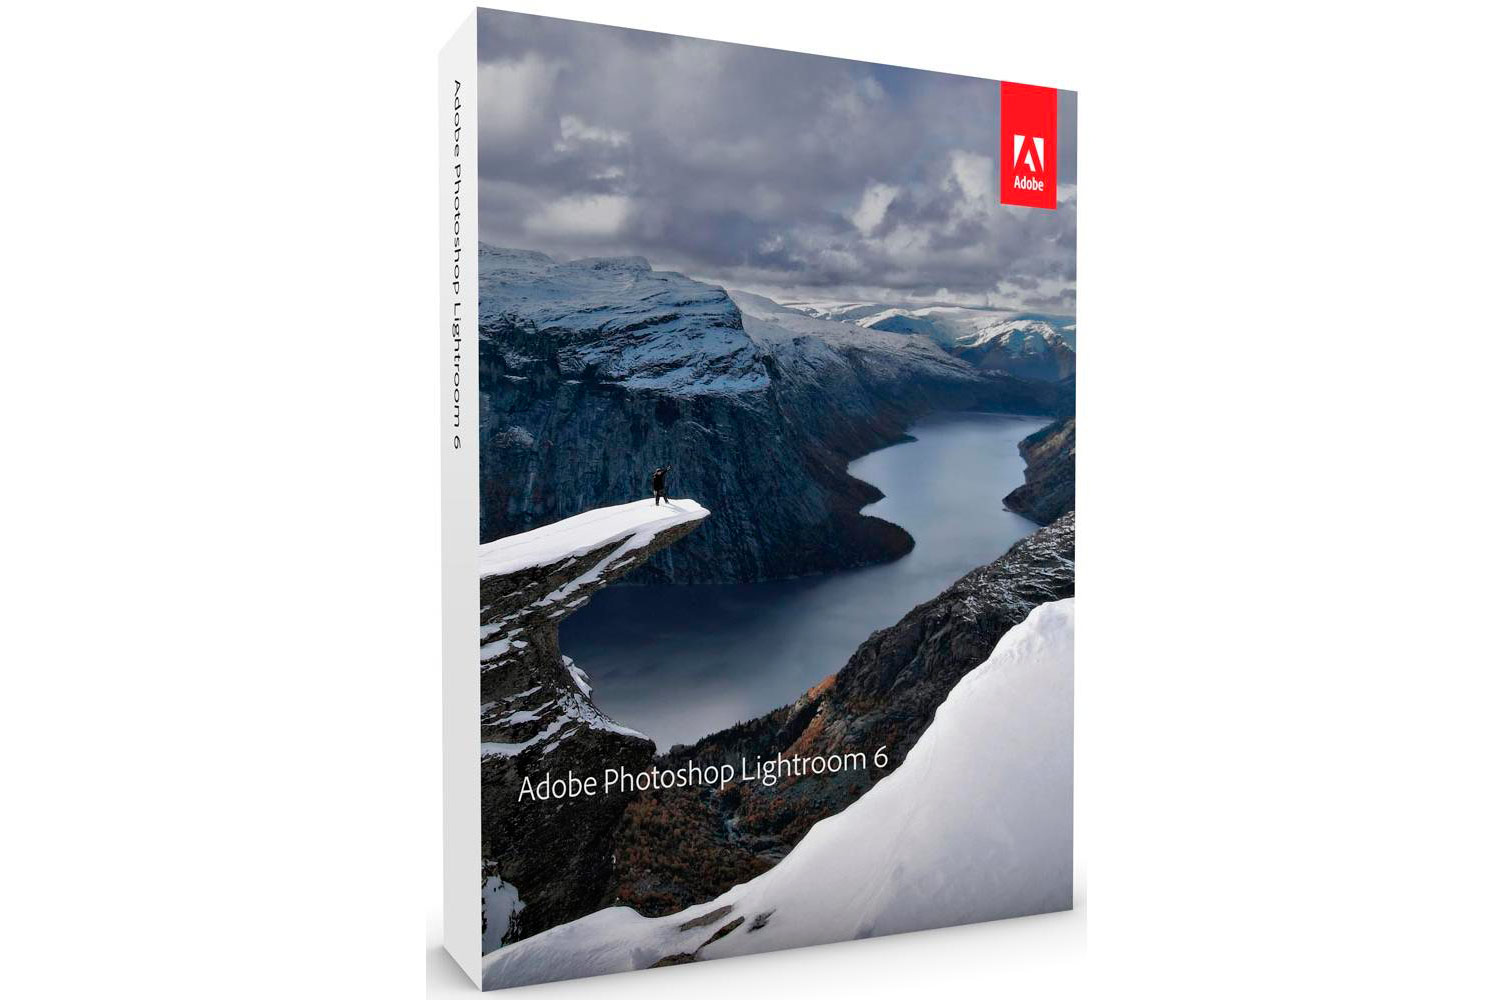 10 New Features of Lightroom 6 and CC